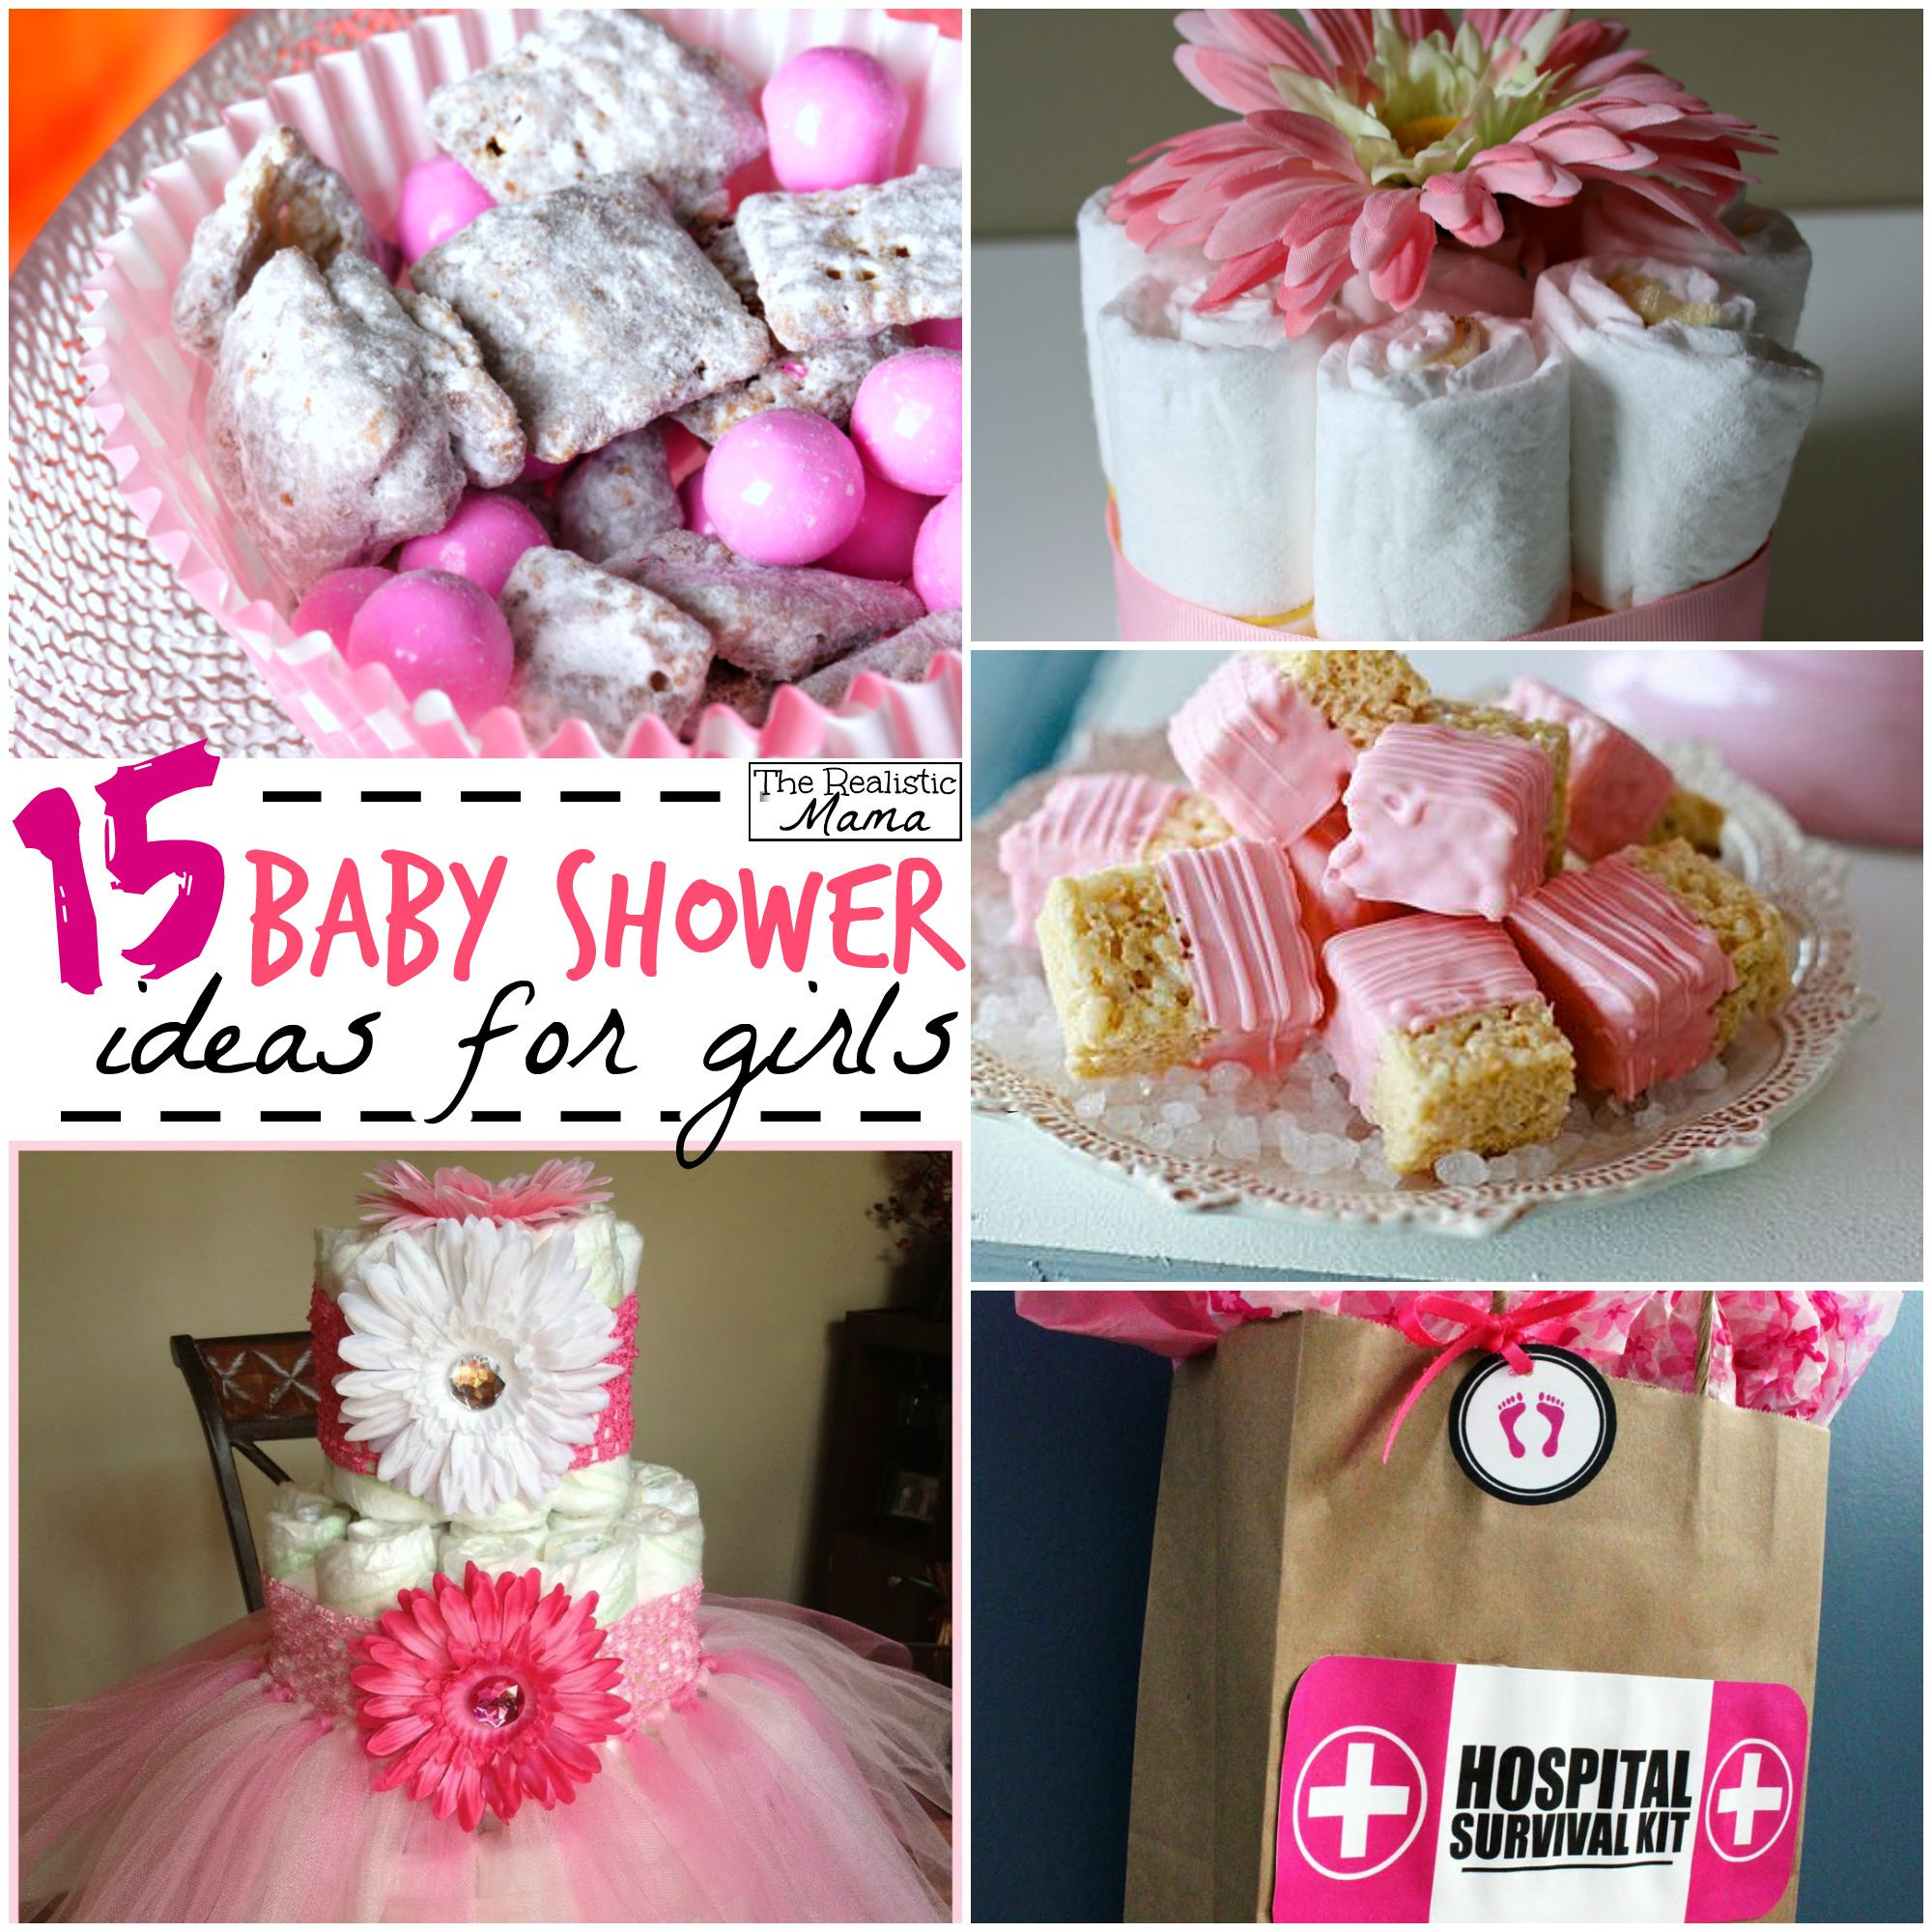 Baby Shower Gift Ideas For A Girl  15 Baby Shower Ideas for Girls The Realistic Mama